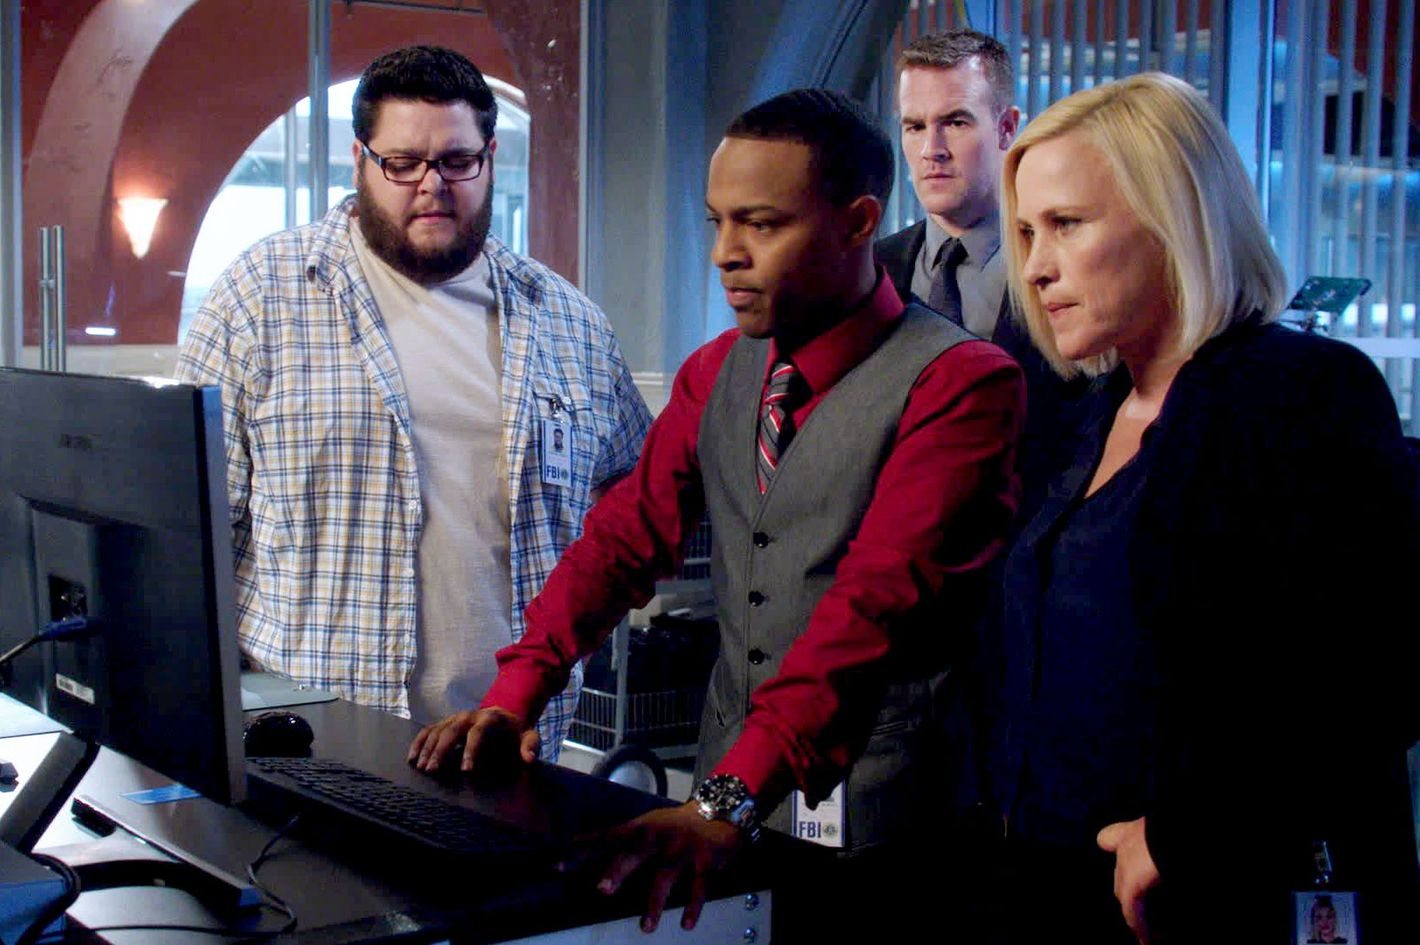 CSI: Cyber Screencap Recap: Computers Most Certainly Will Kill You